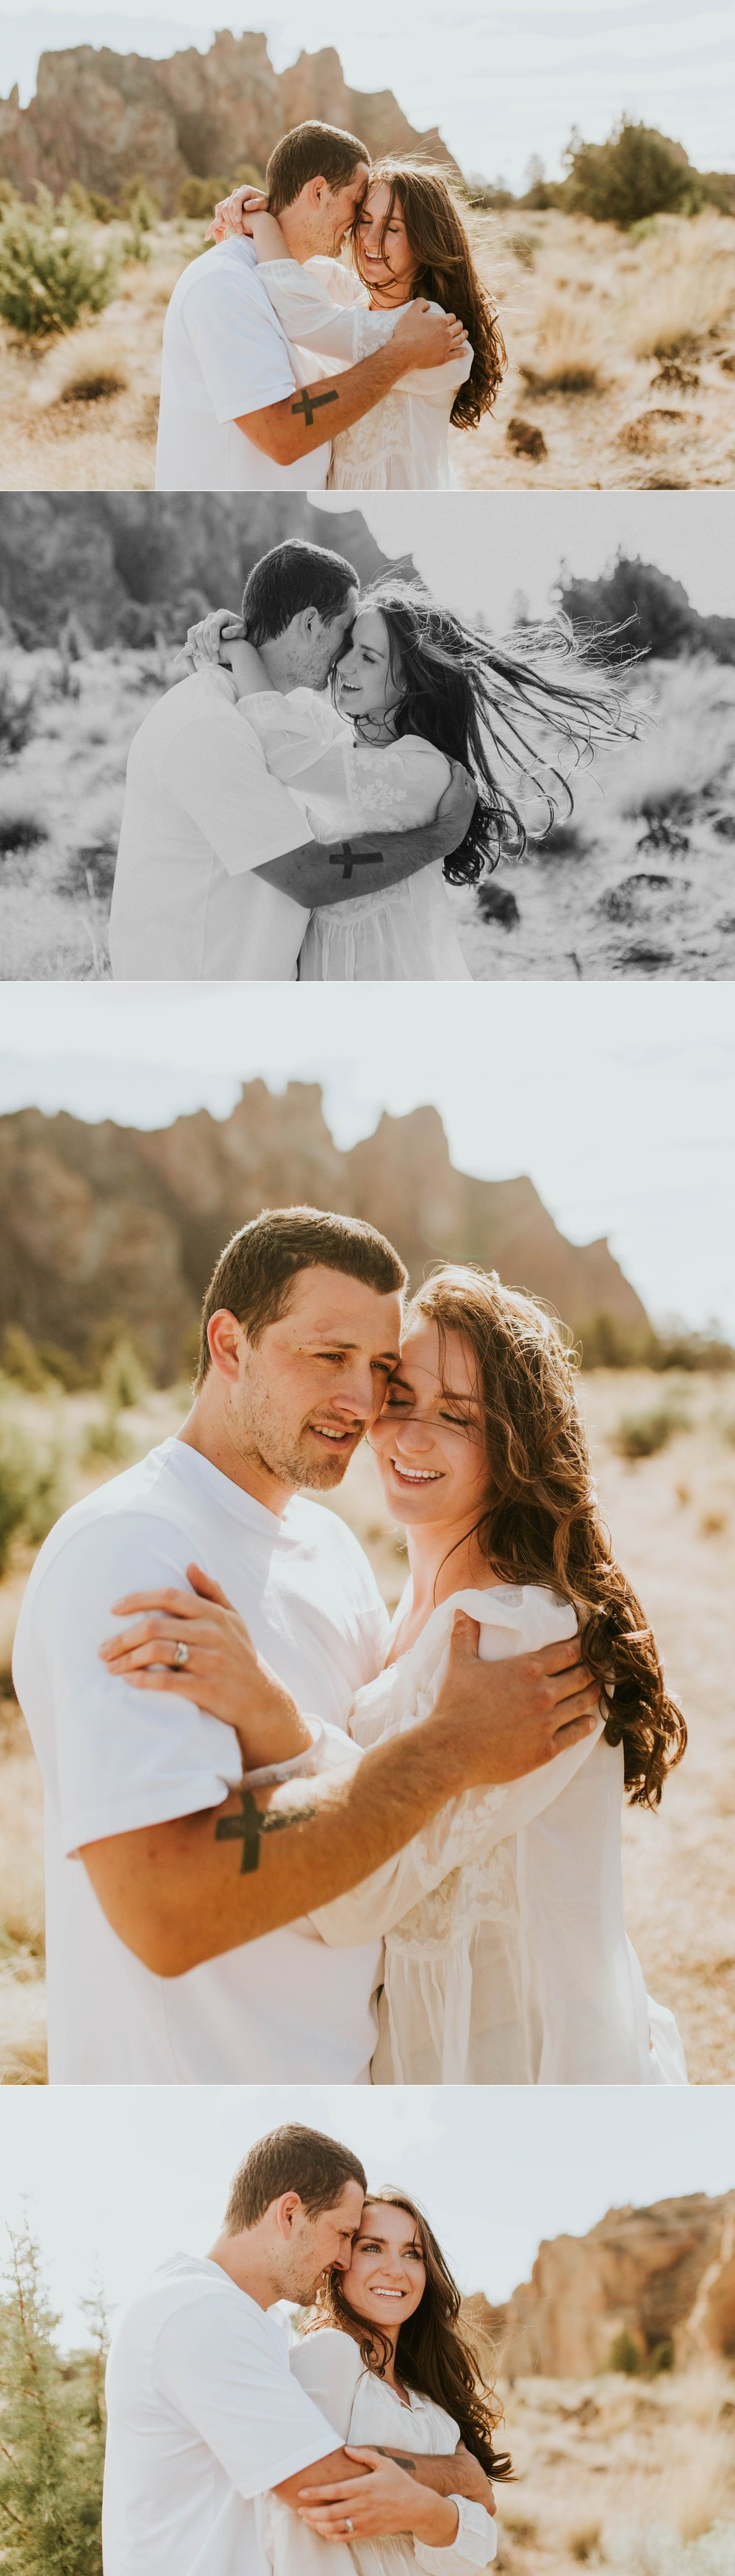 ThroughVictoriasLens_SmithRock_Engagements15.jpg